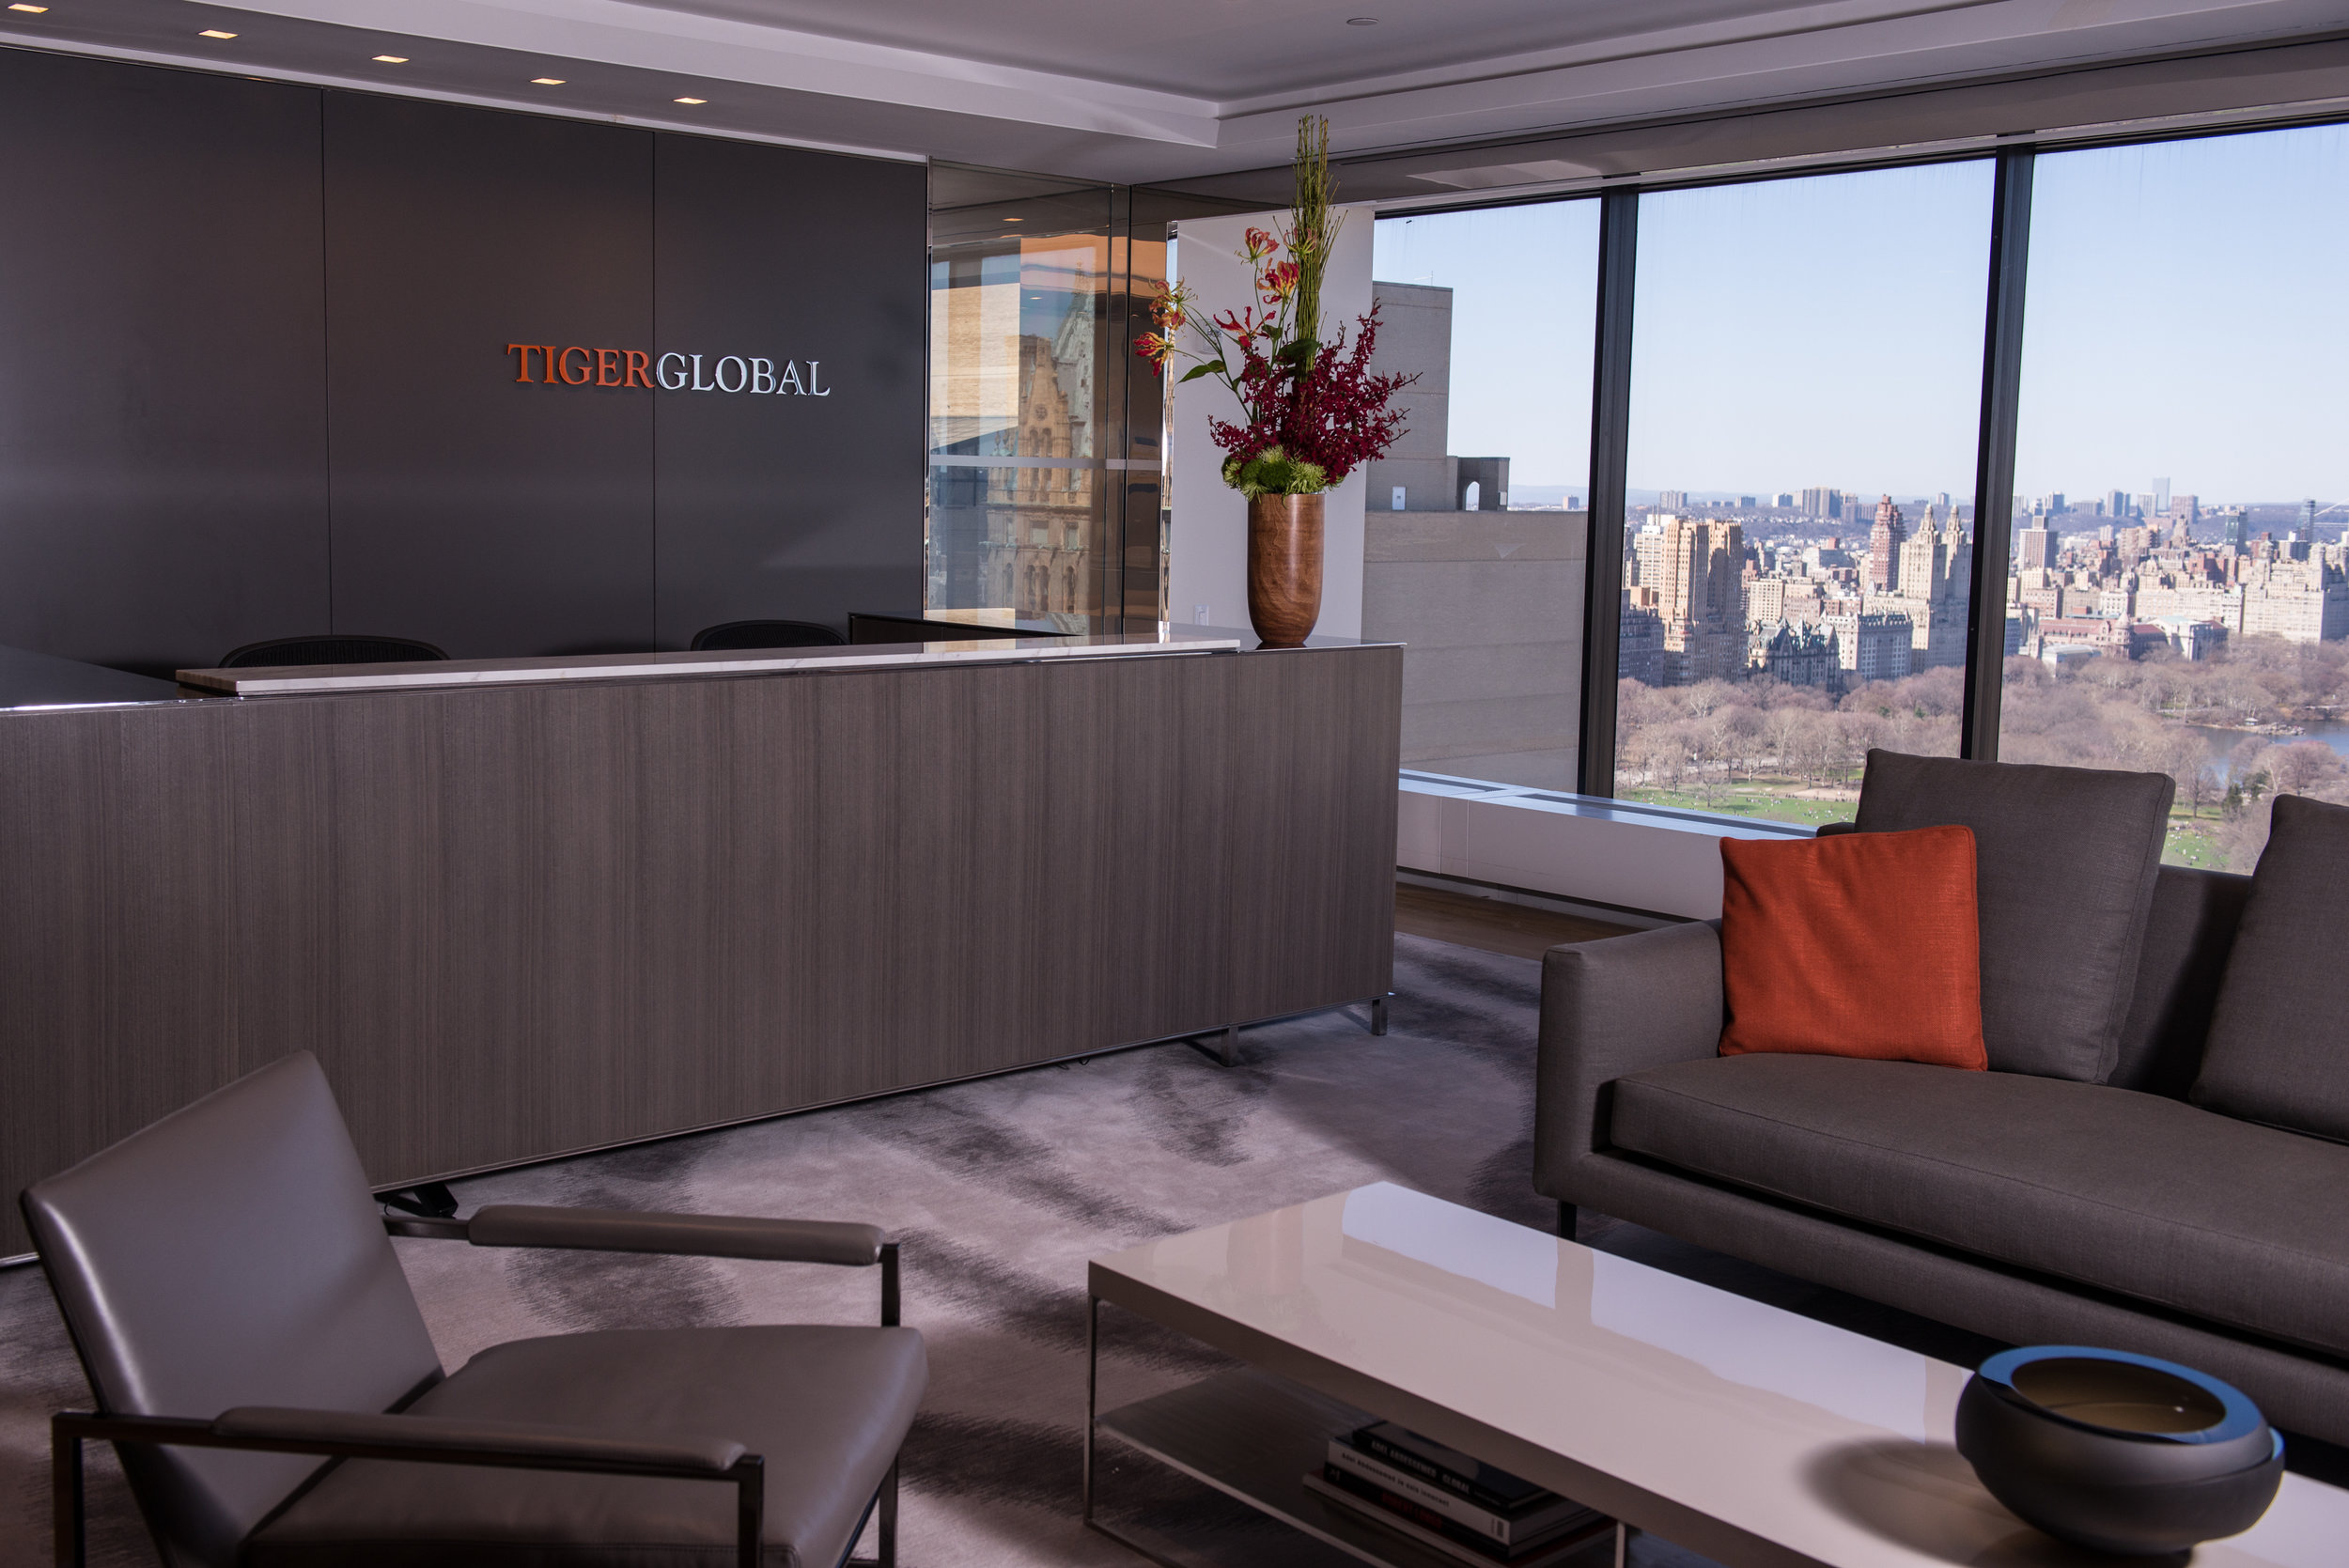 Tiger Global Management - Coming soon…